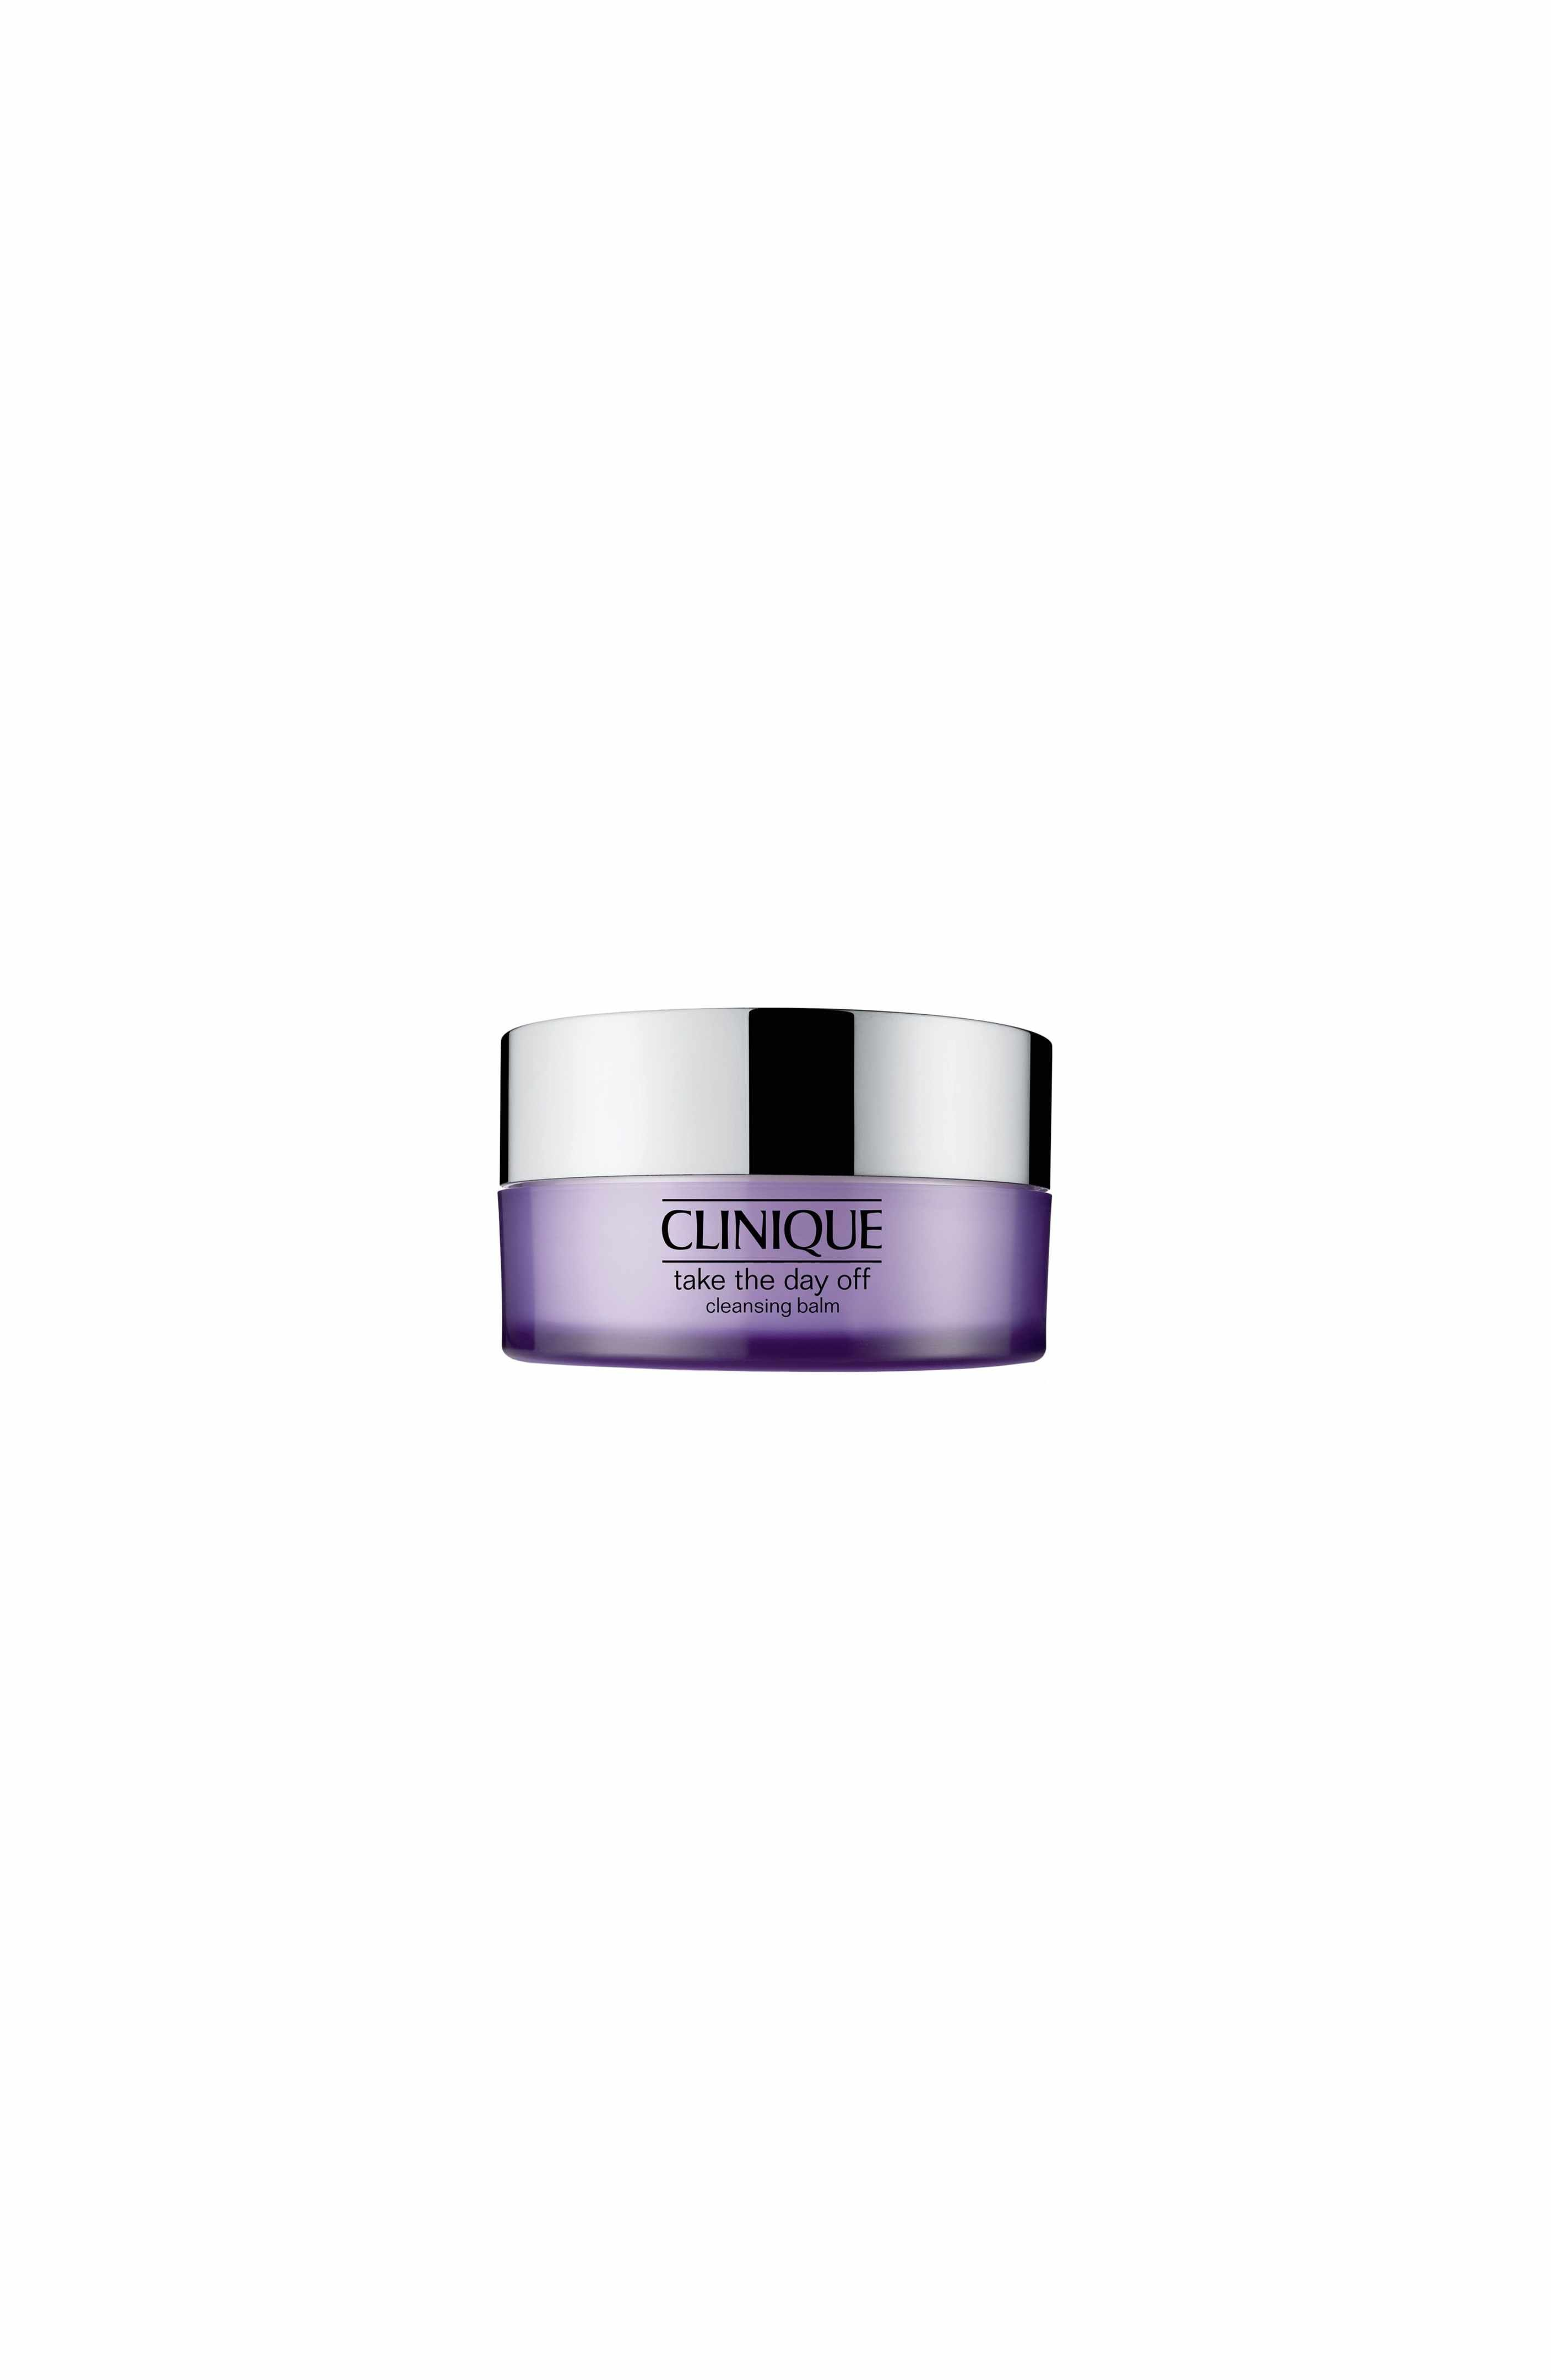 Clinique Take the Day Off Cleansing Balm The balm, Eye